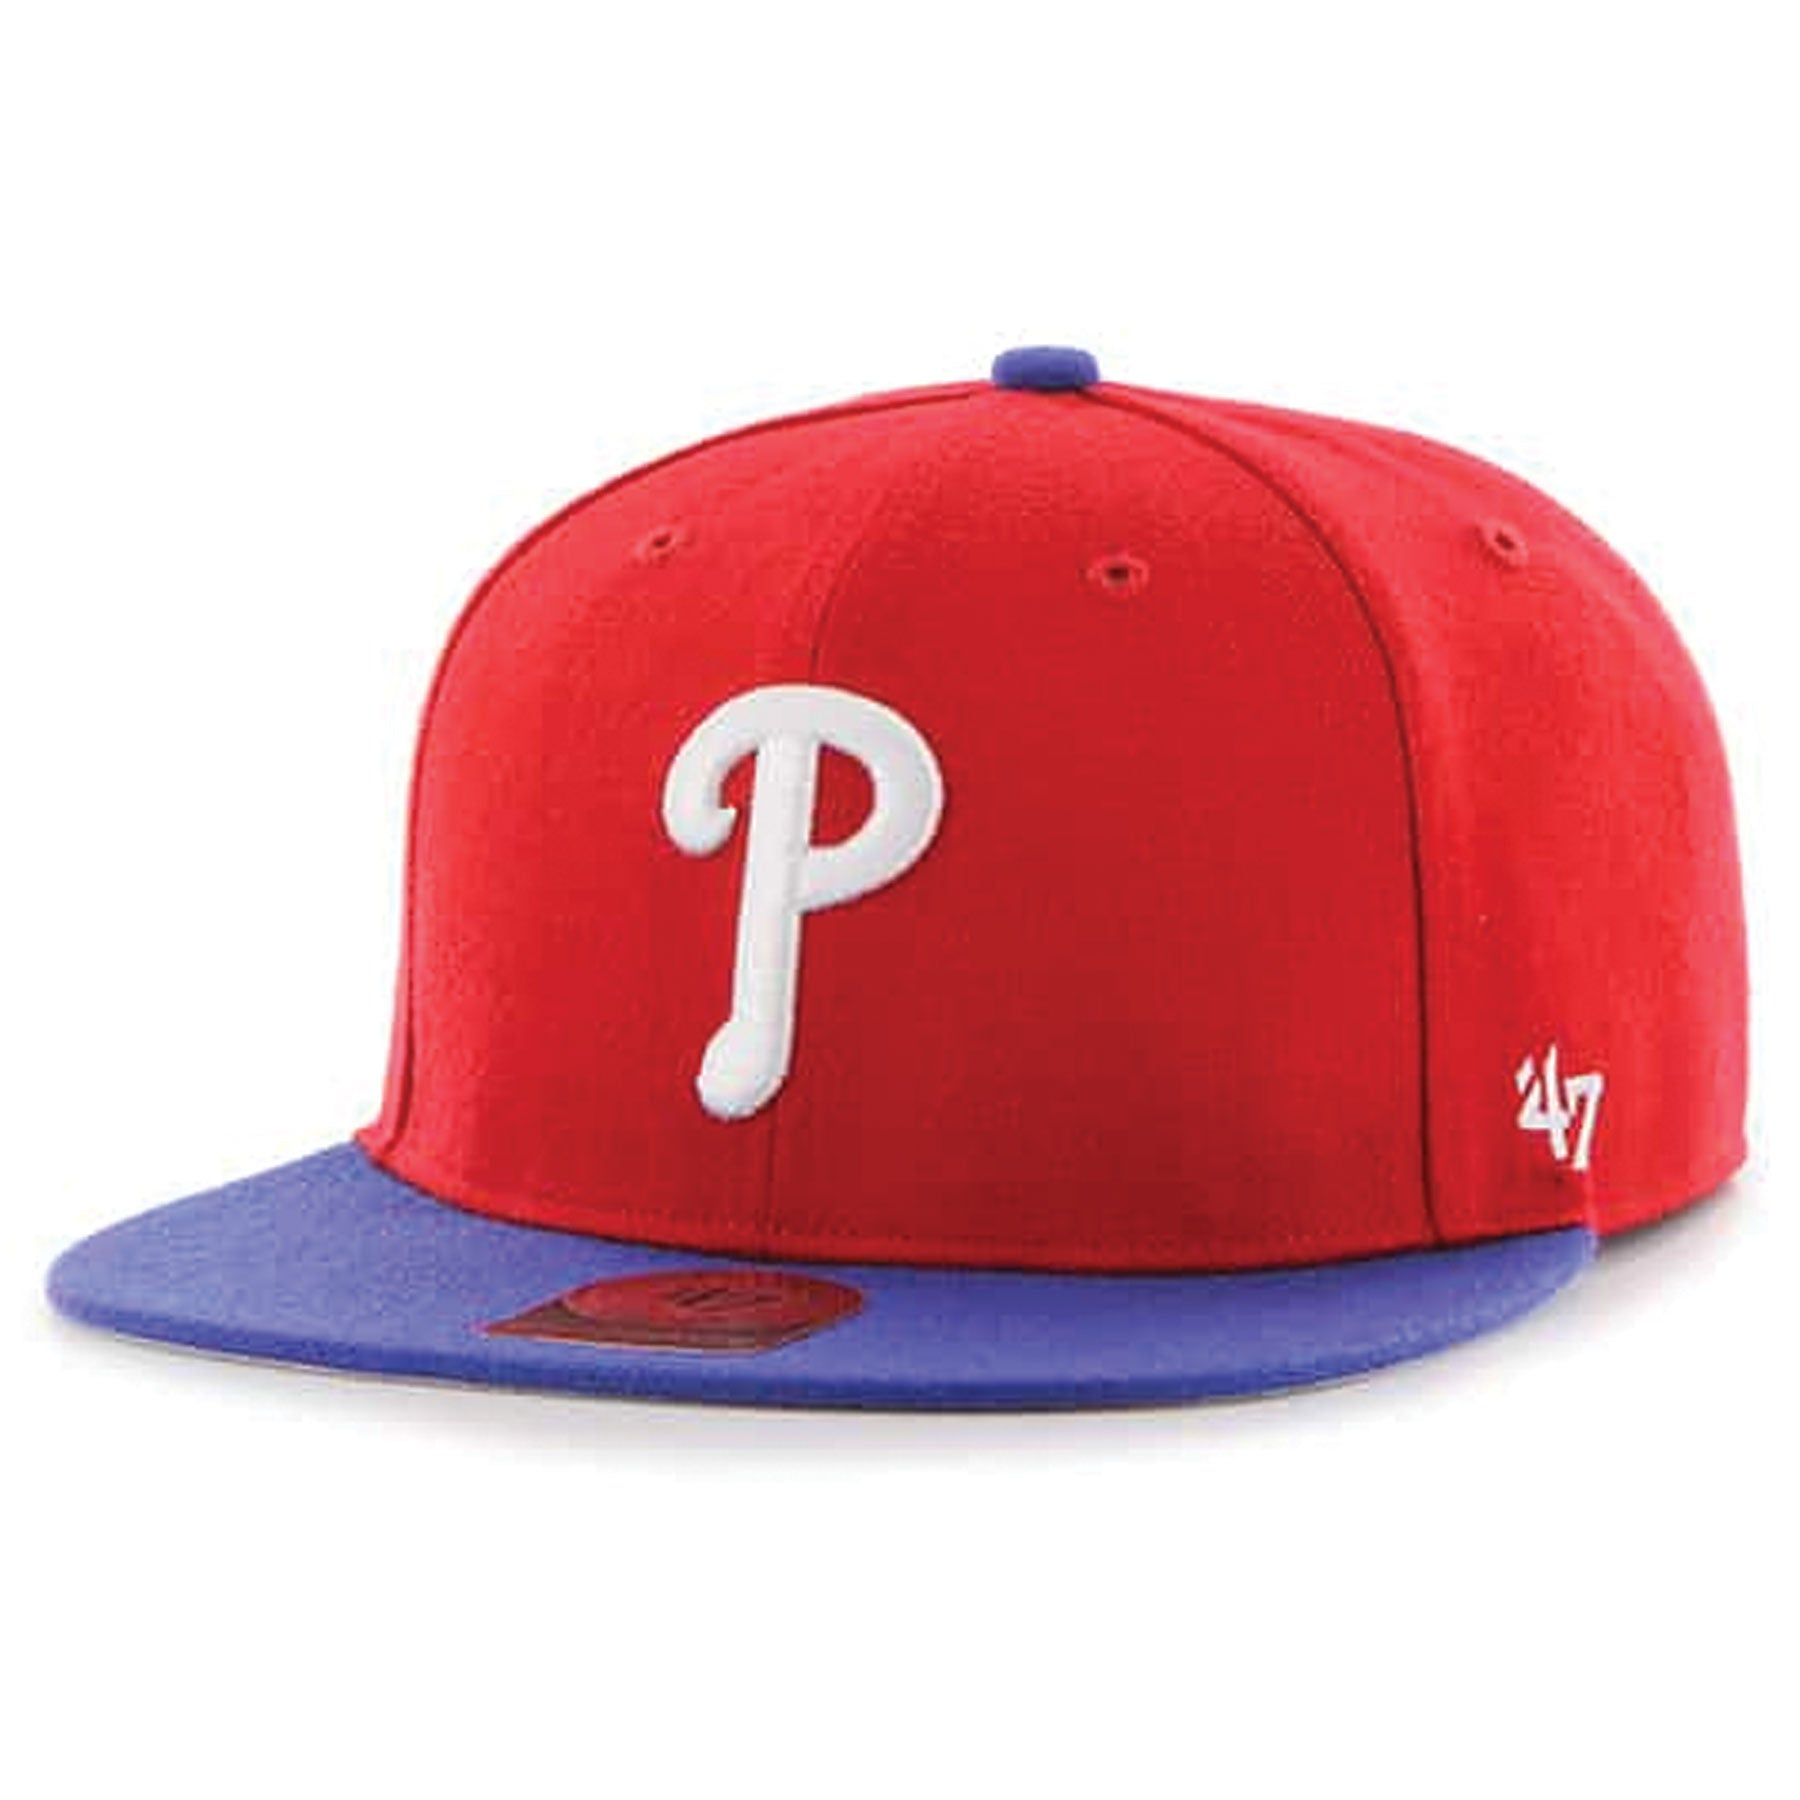 big sale 98e47 d094f Philadelphia Phillies Two Tone Red Blue Kid s Sized Snapback Hat